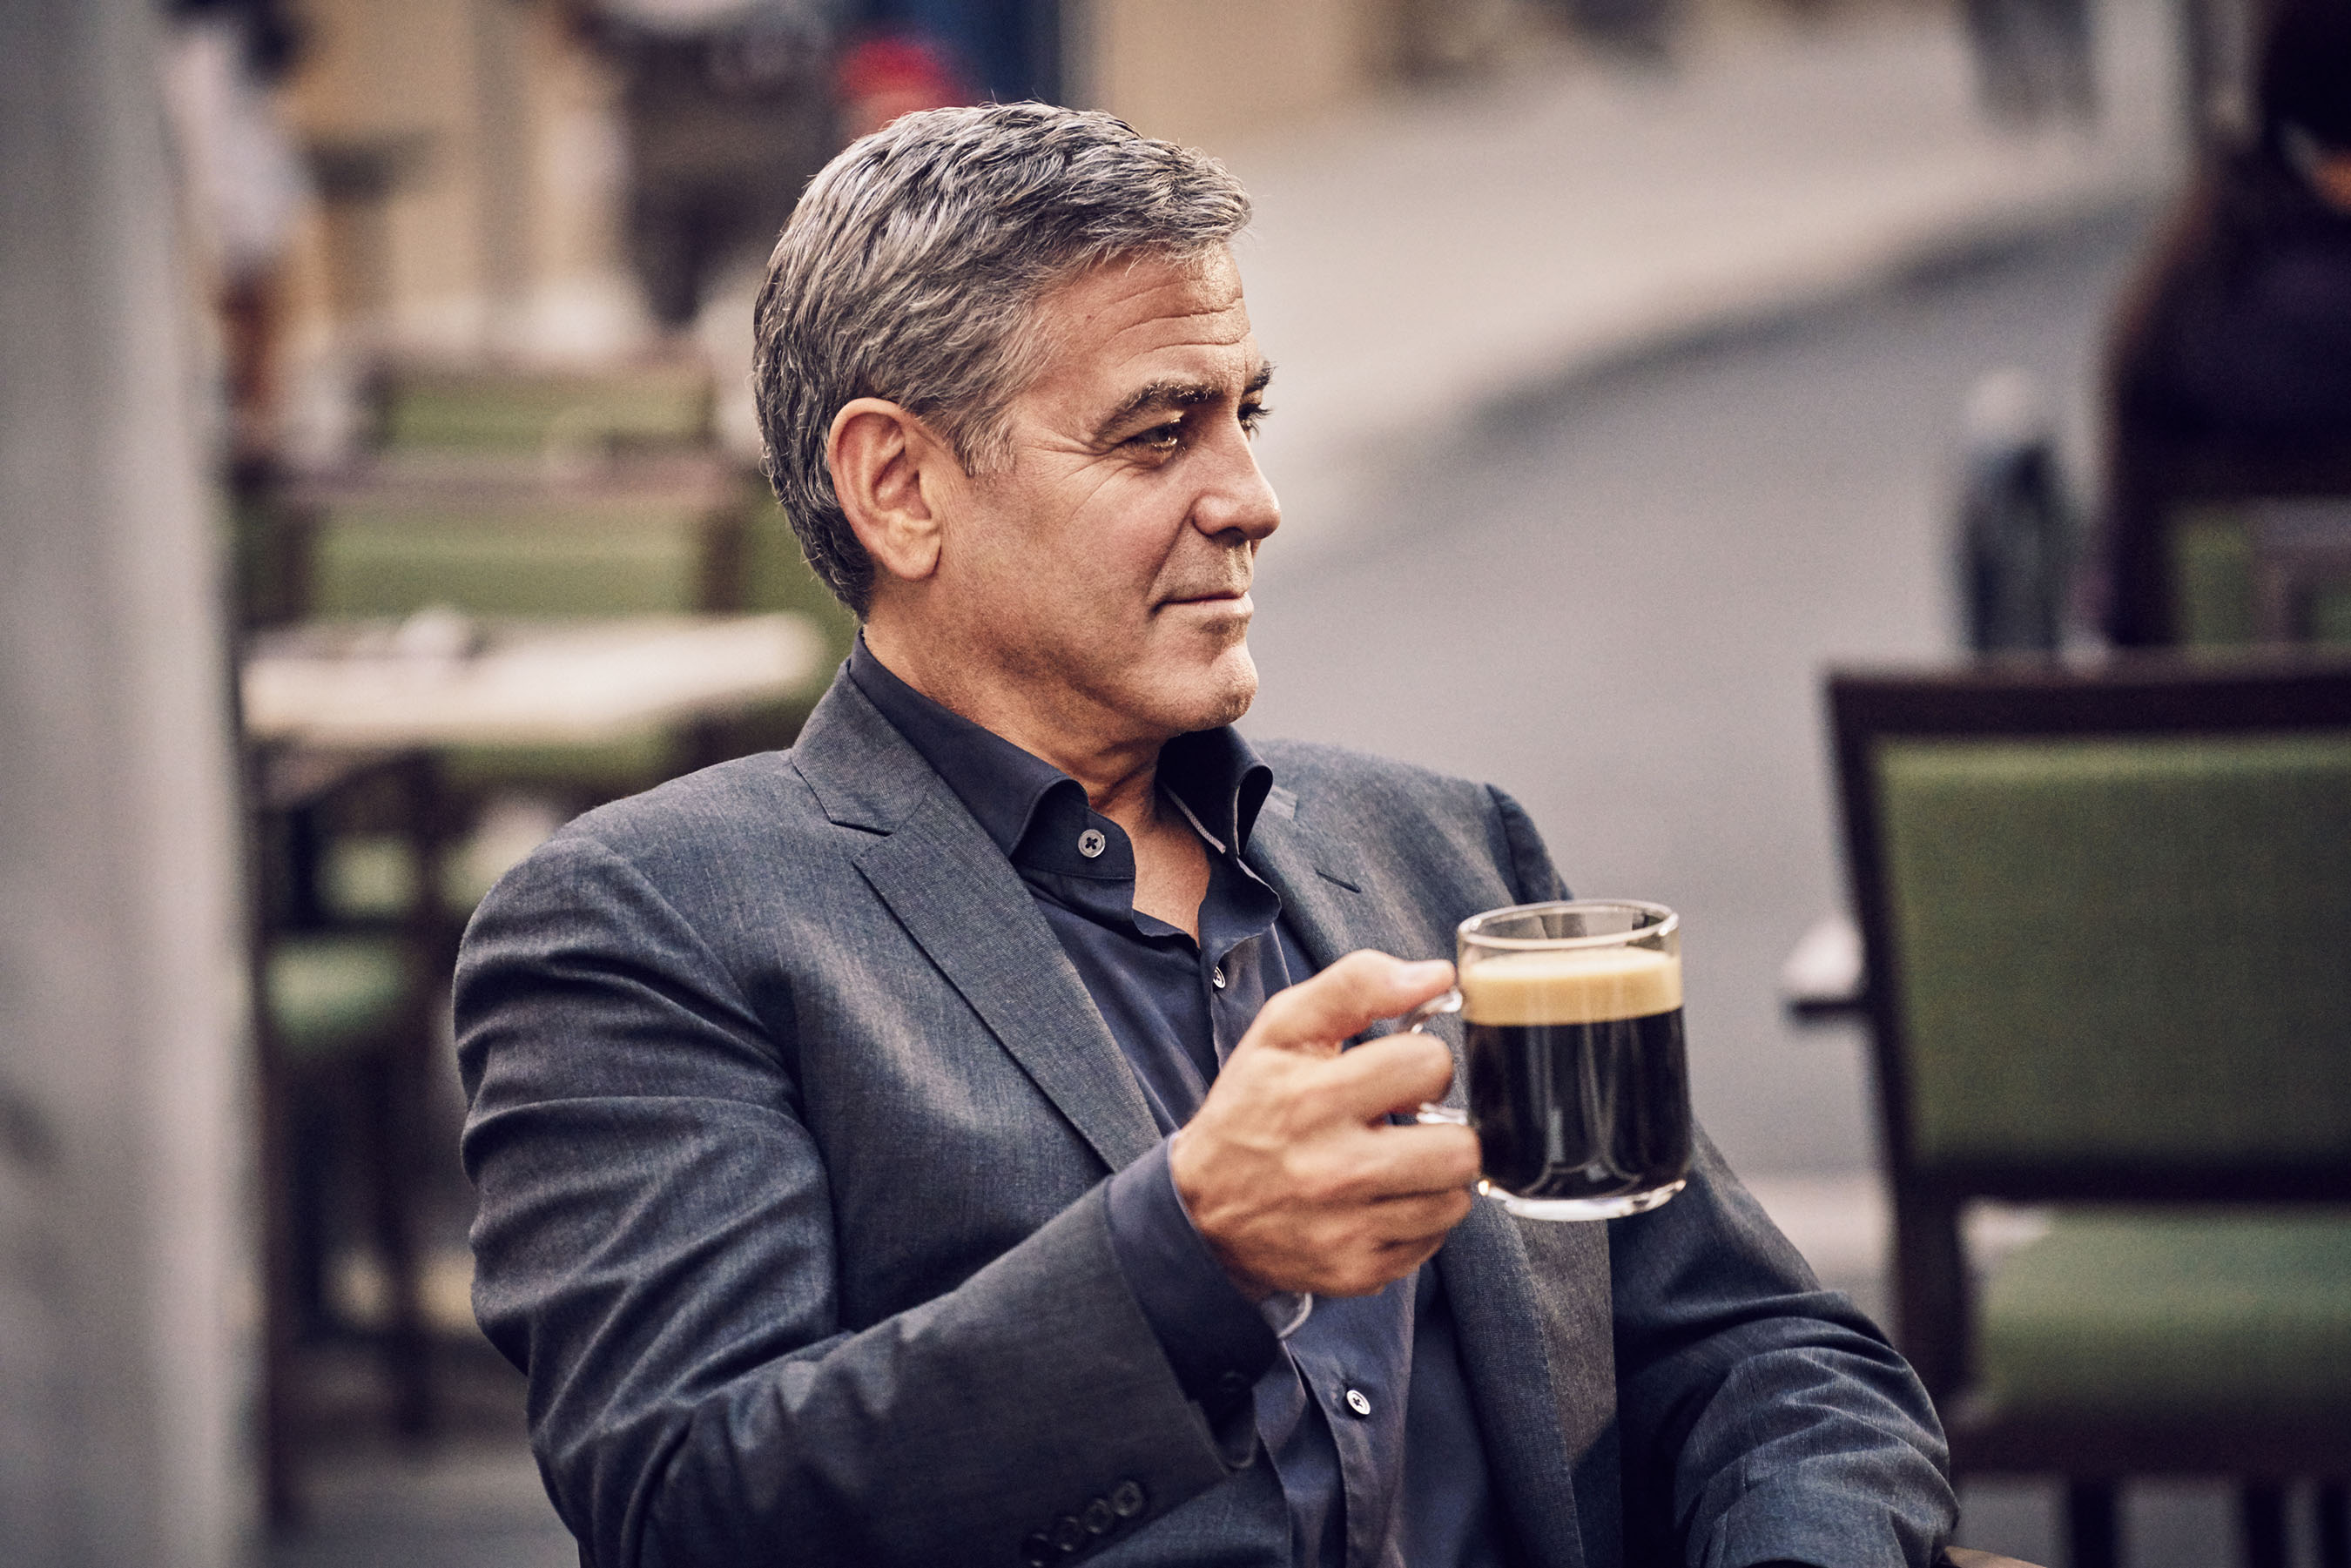 george clooney coffee machine ad